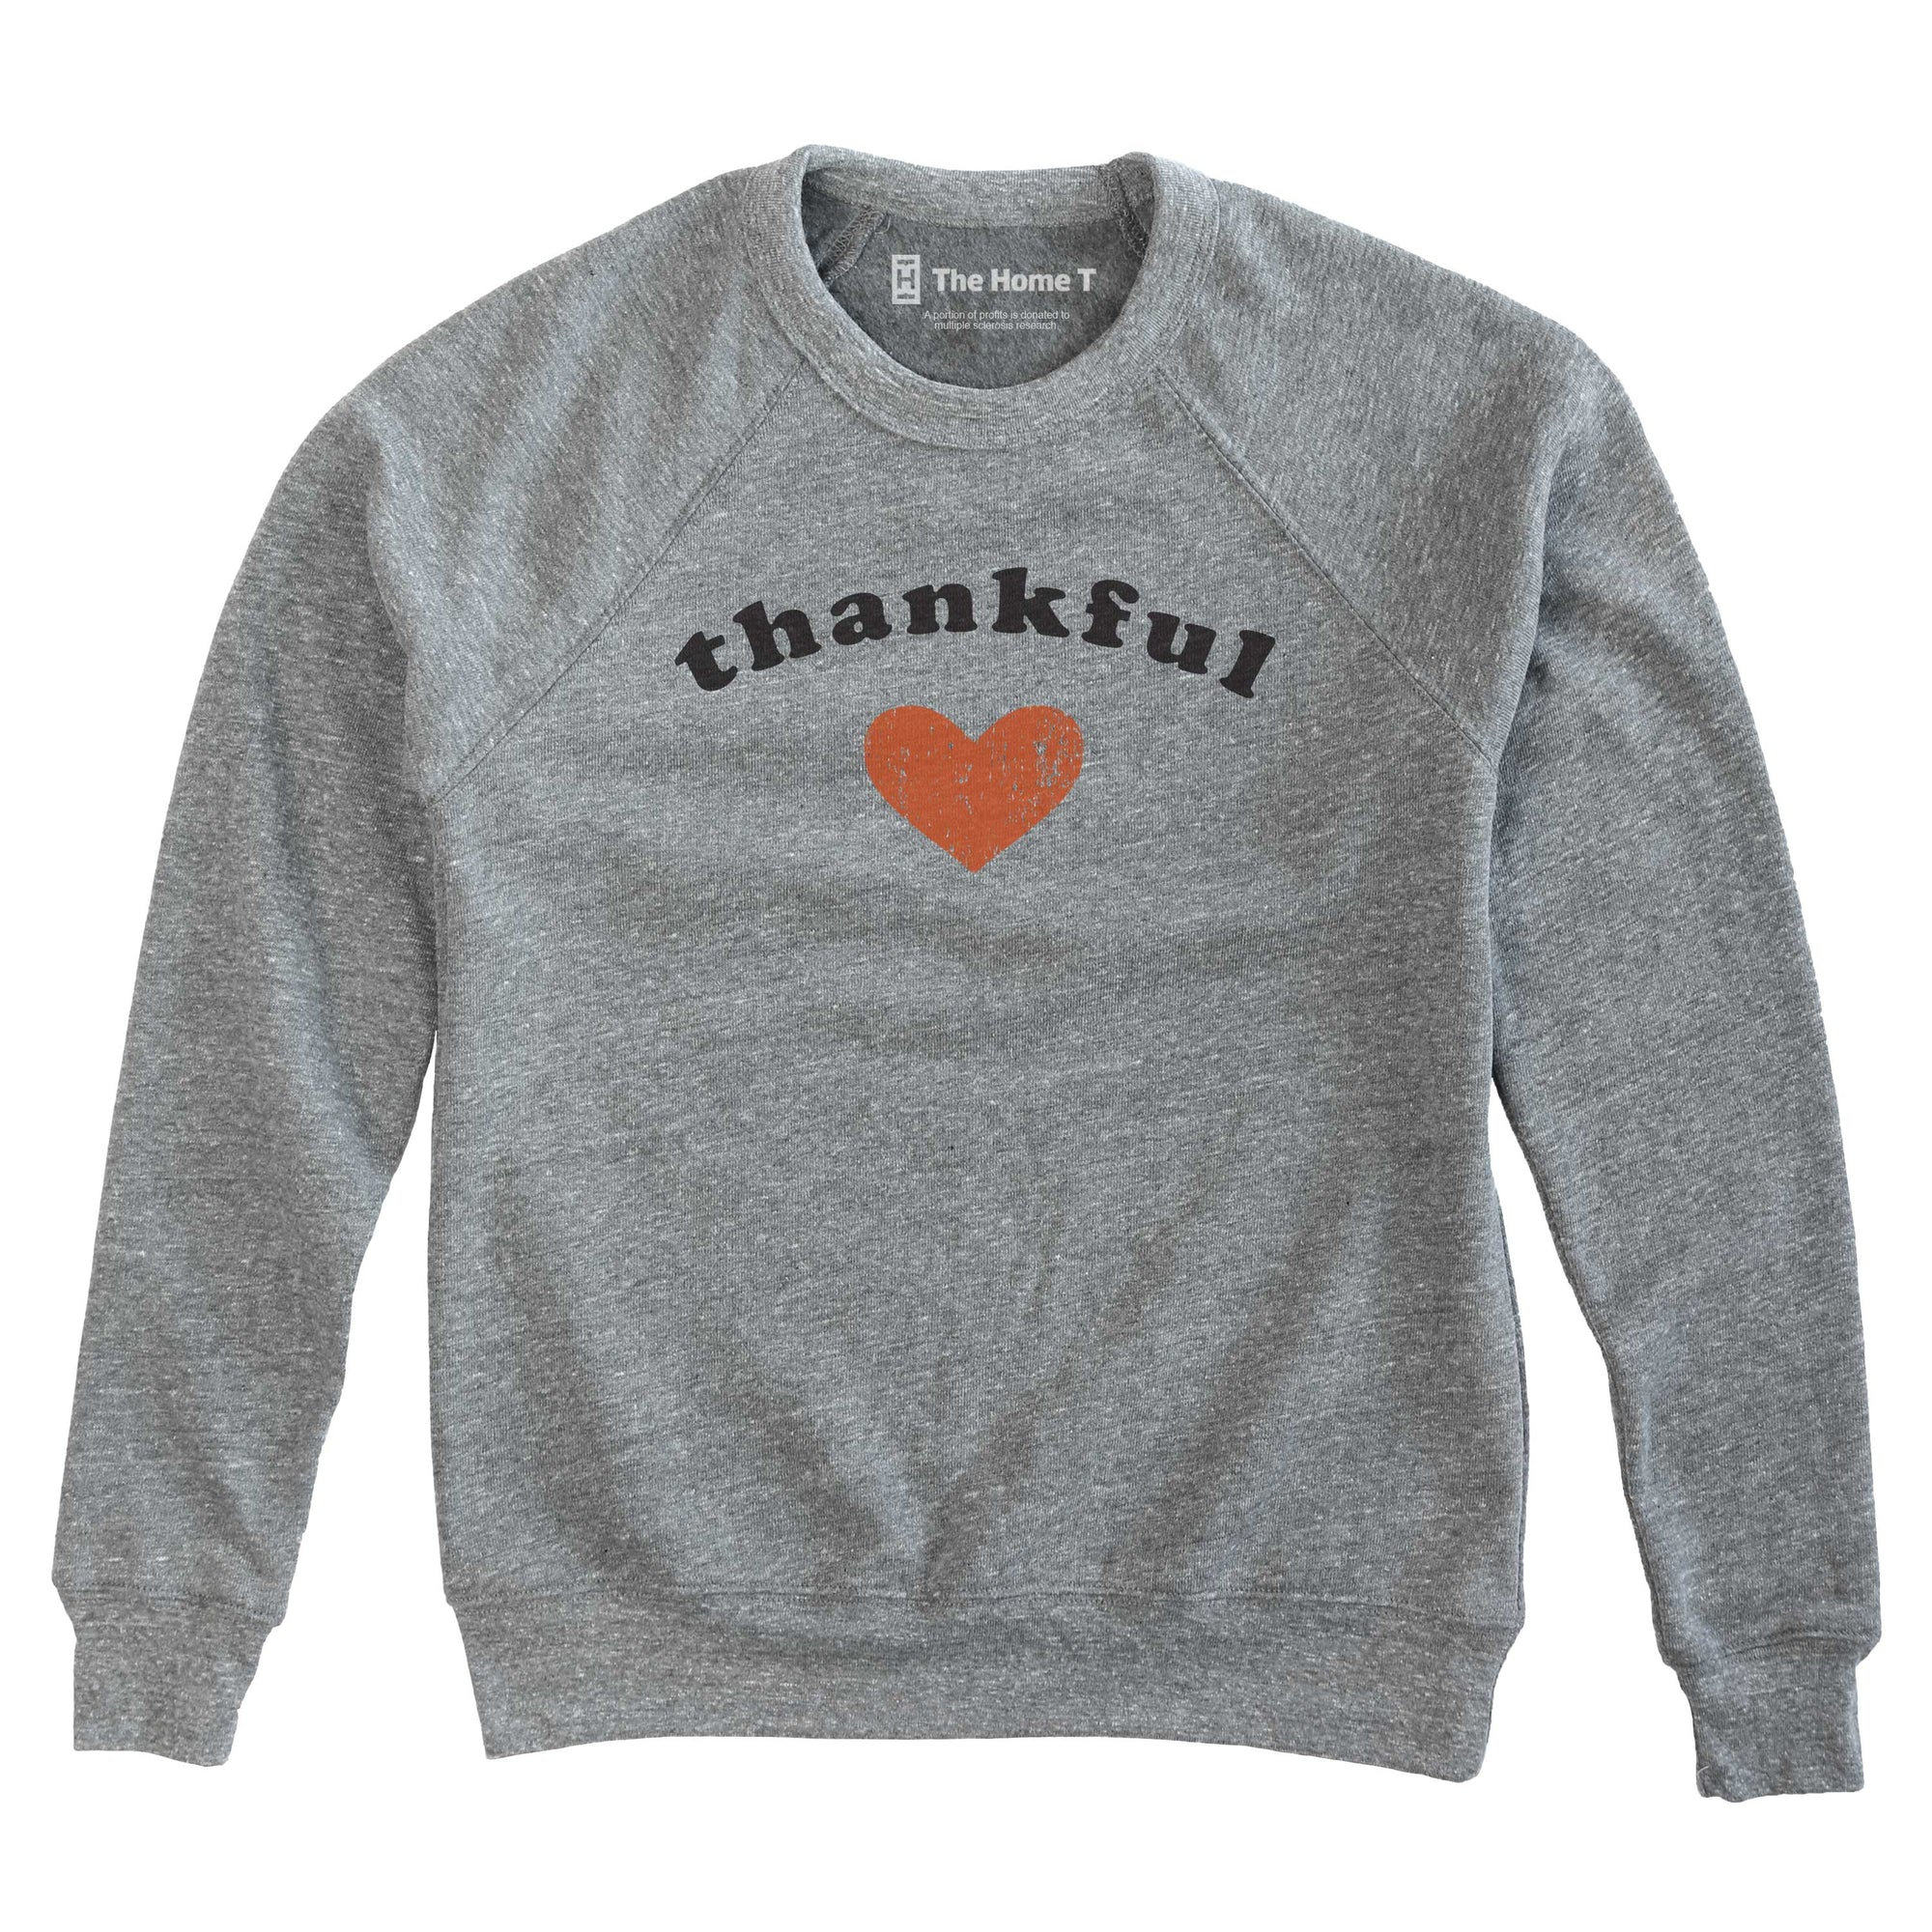 Thankful Heart Crew Neck Sweatshirt The Home T XS CREW NECK